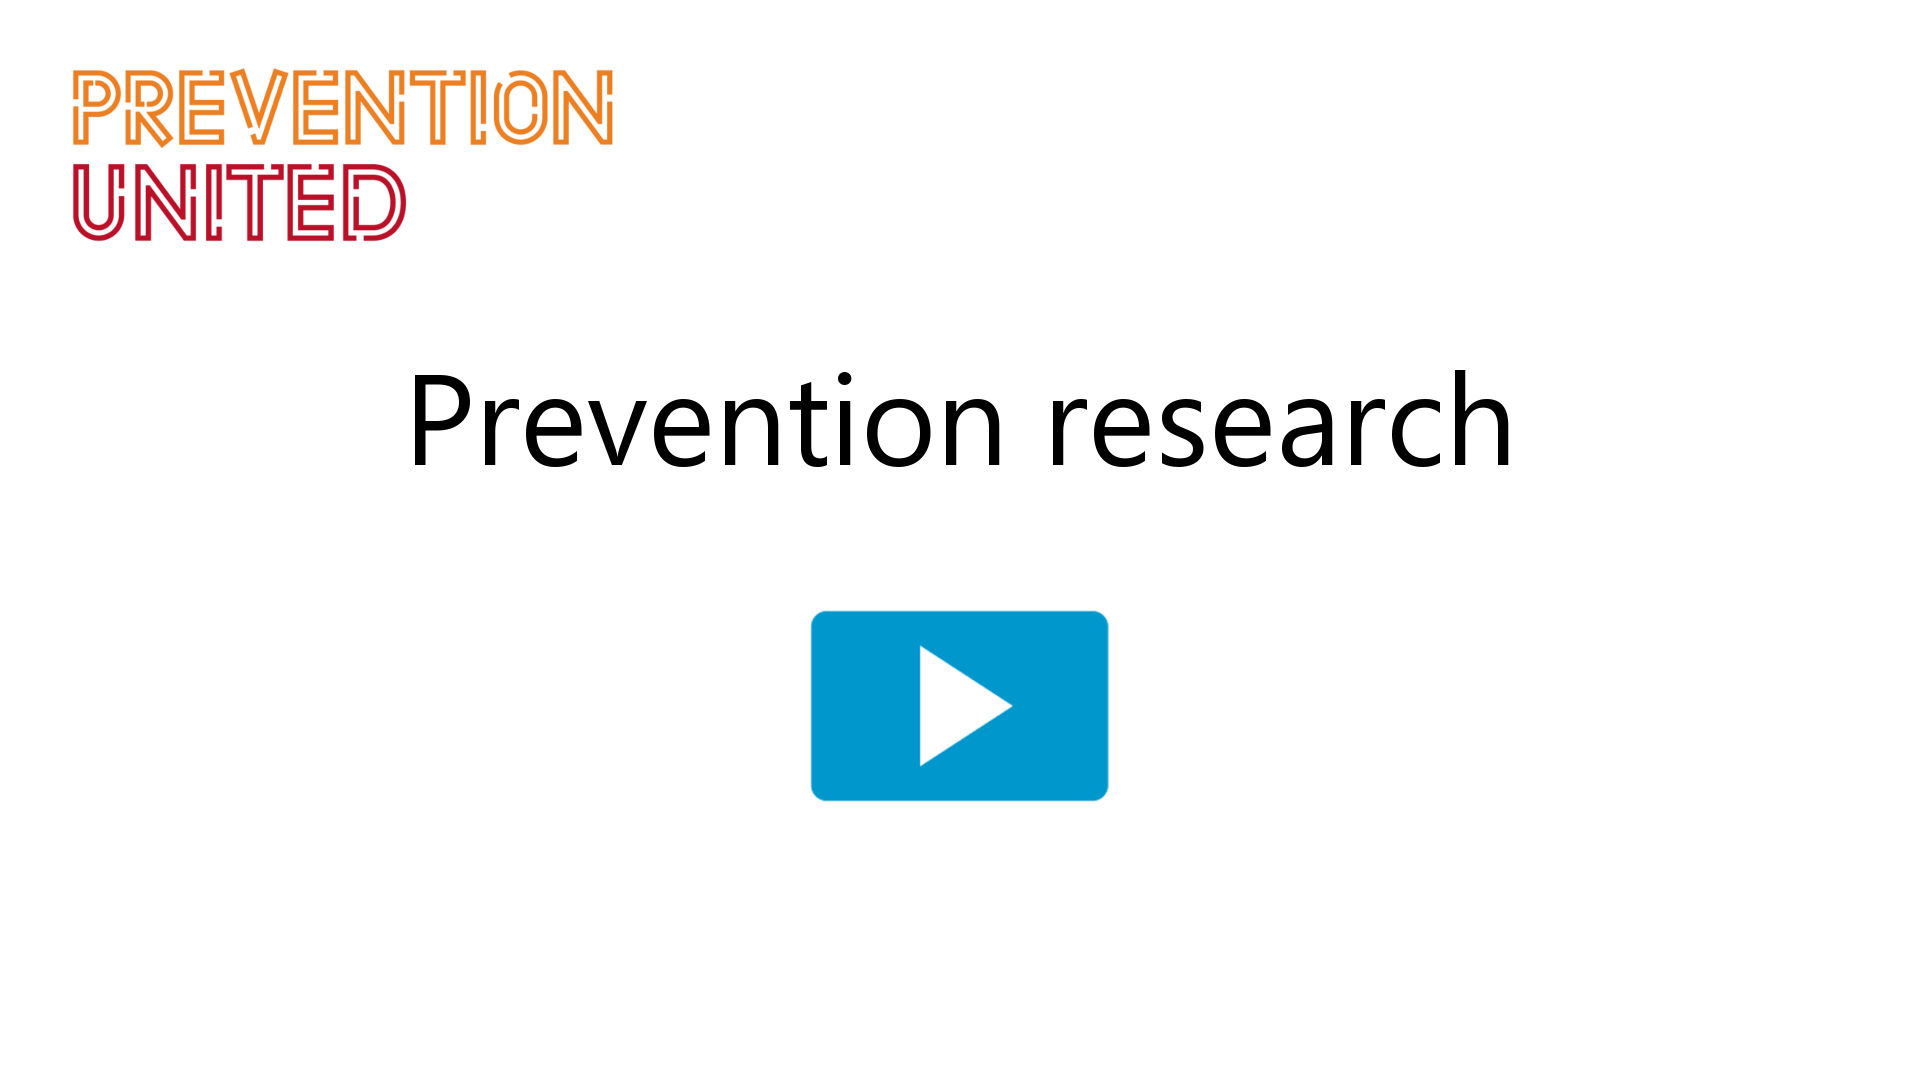 Prevention research